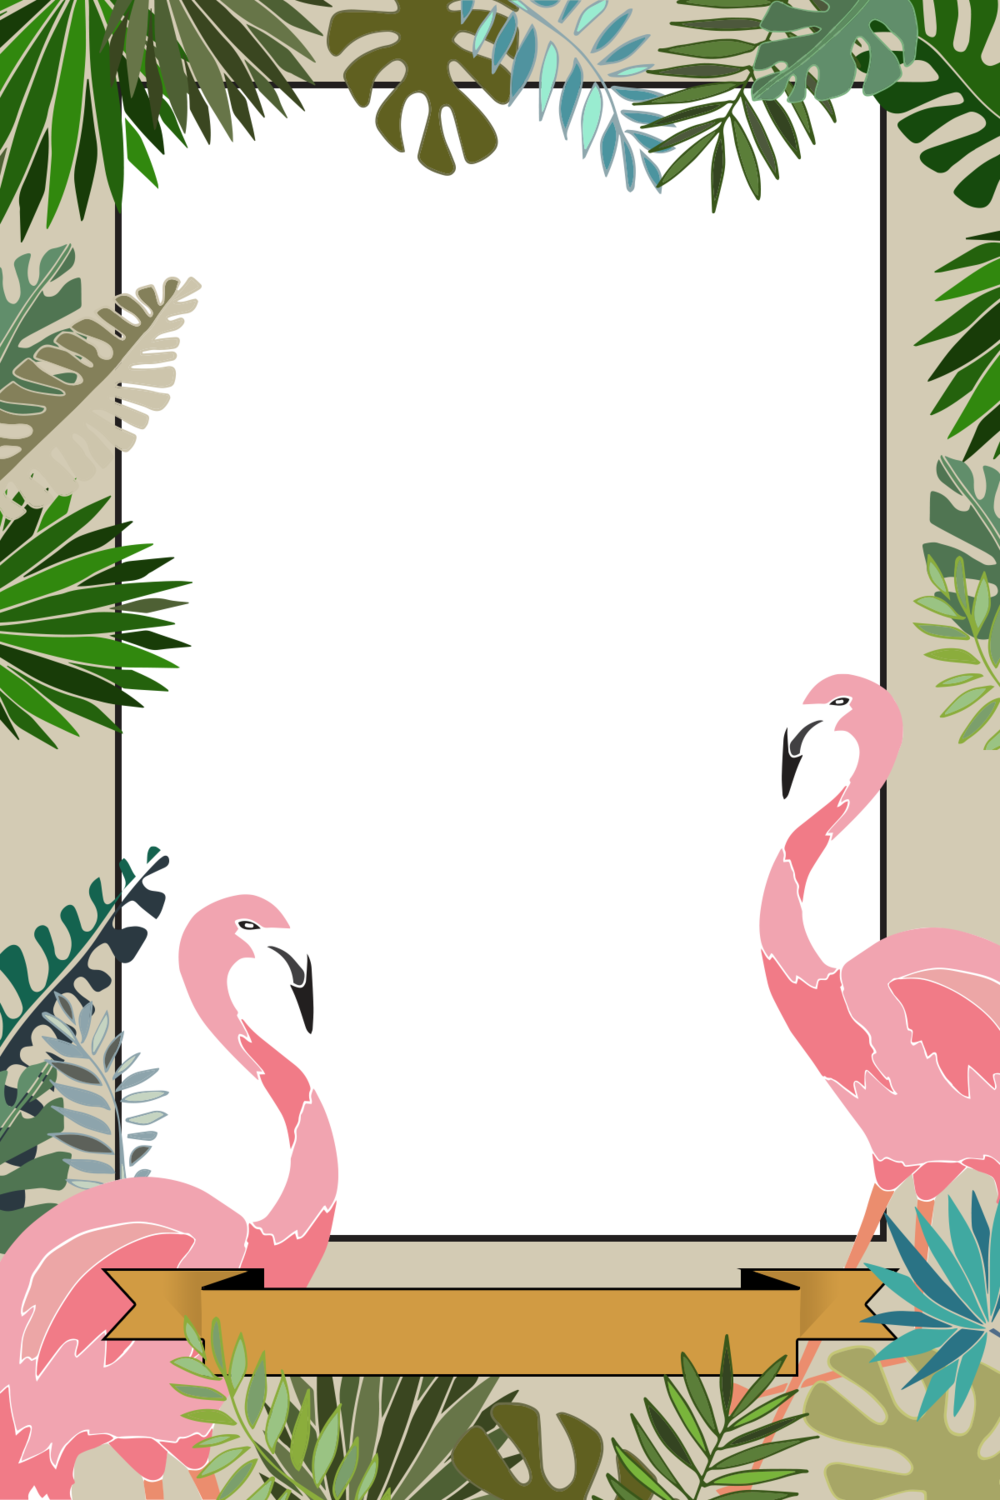 flamingoV.png